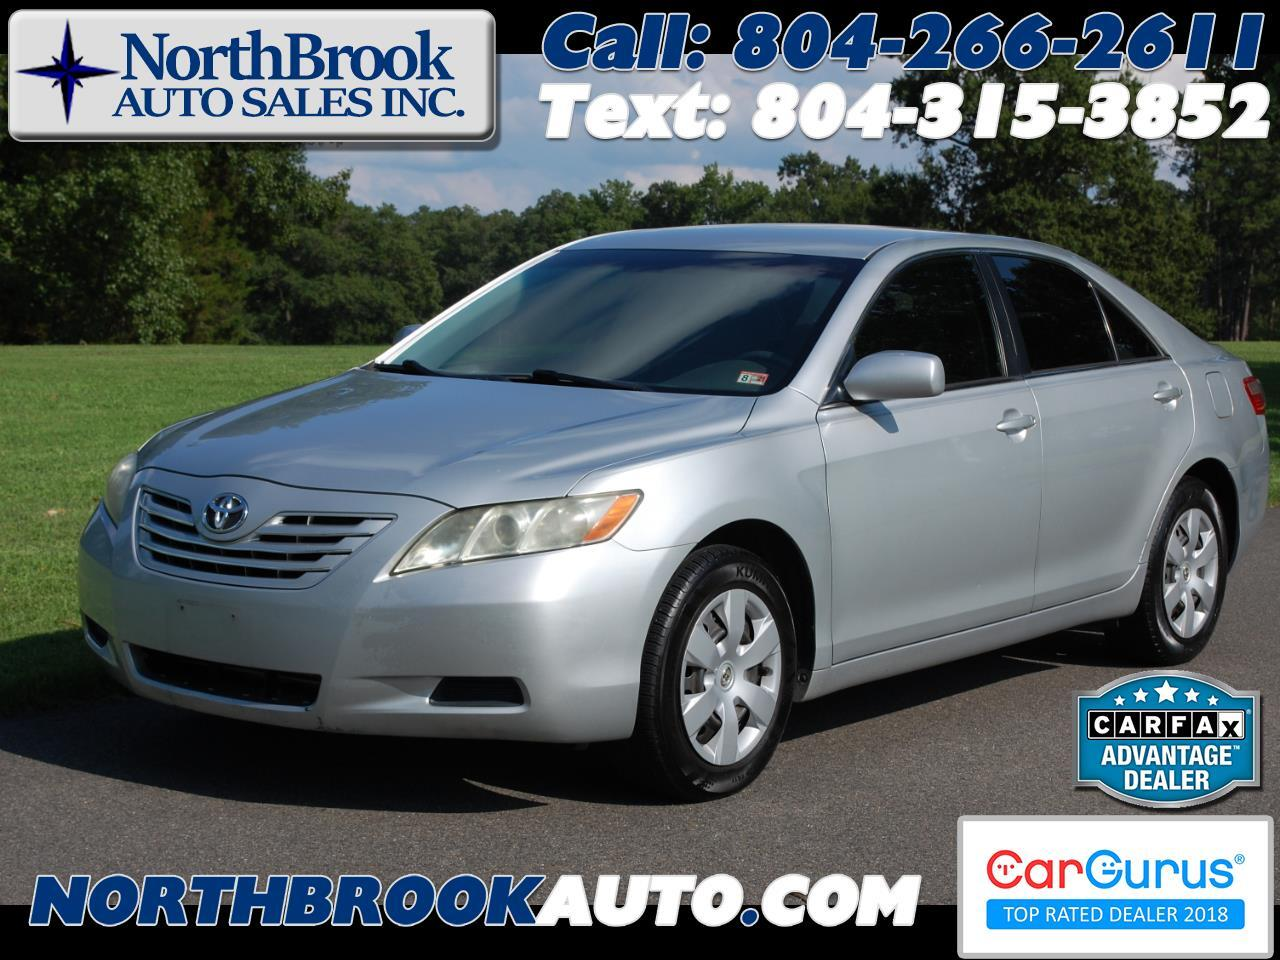 Toyota Camry 4dr Sdn I4 Manual CE (Natl) 2007